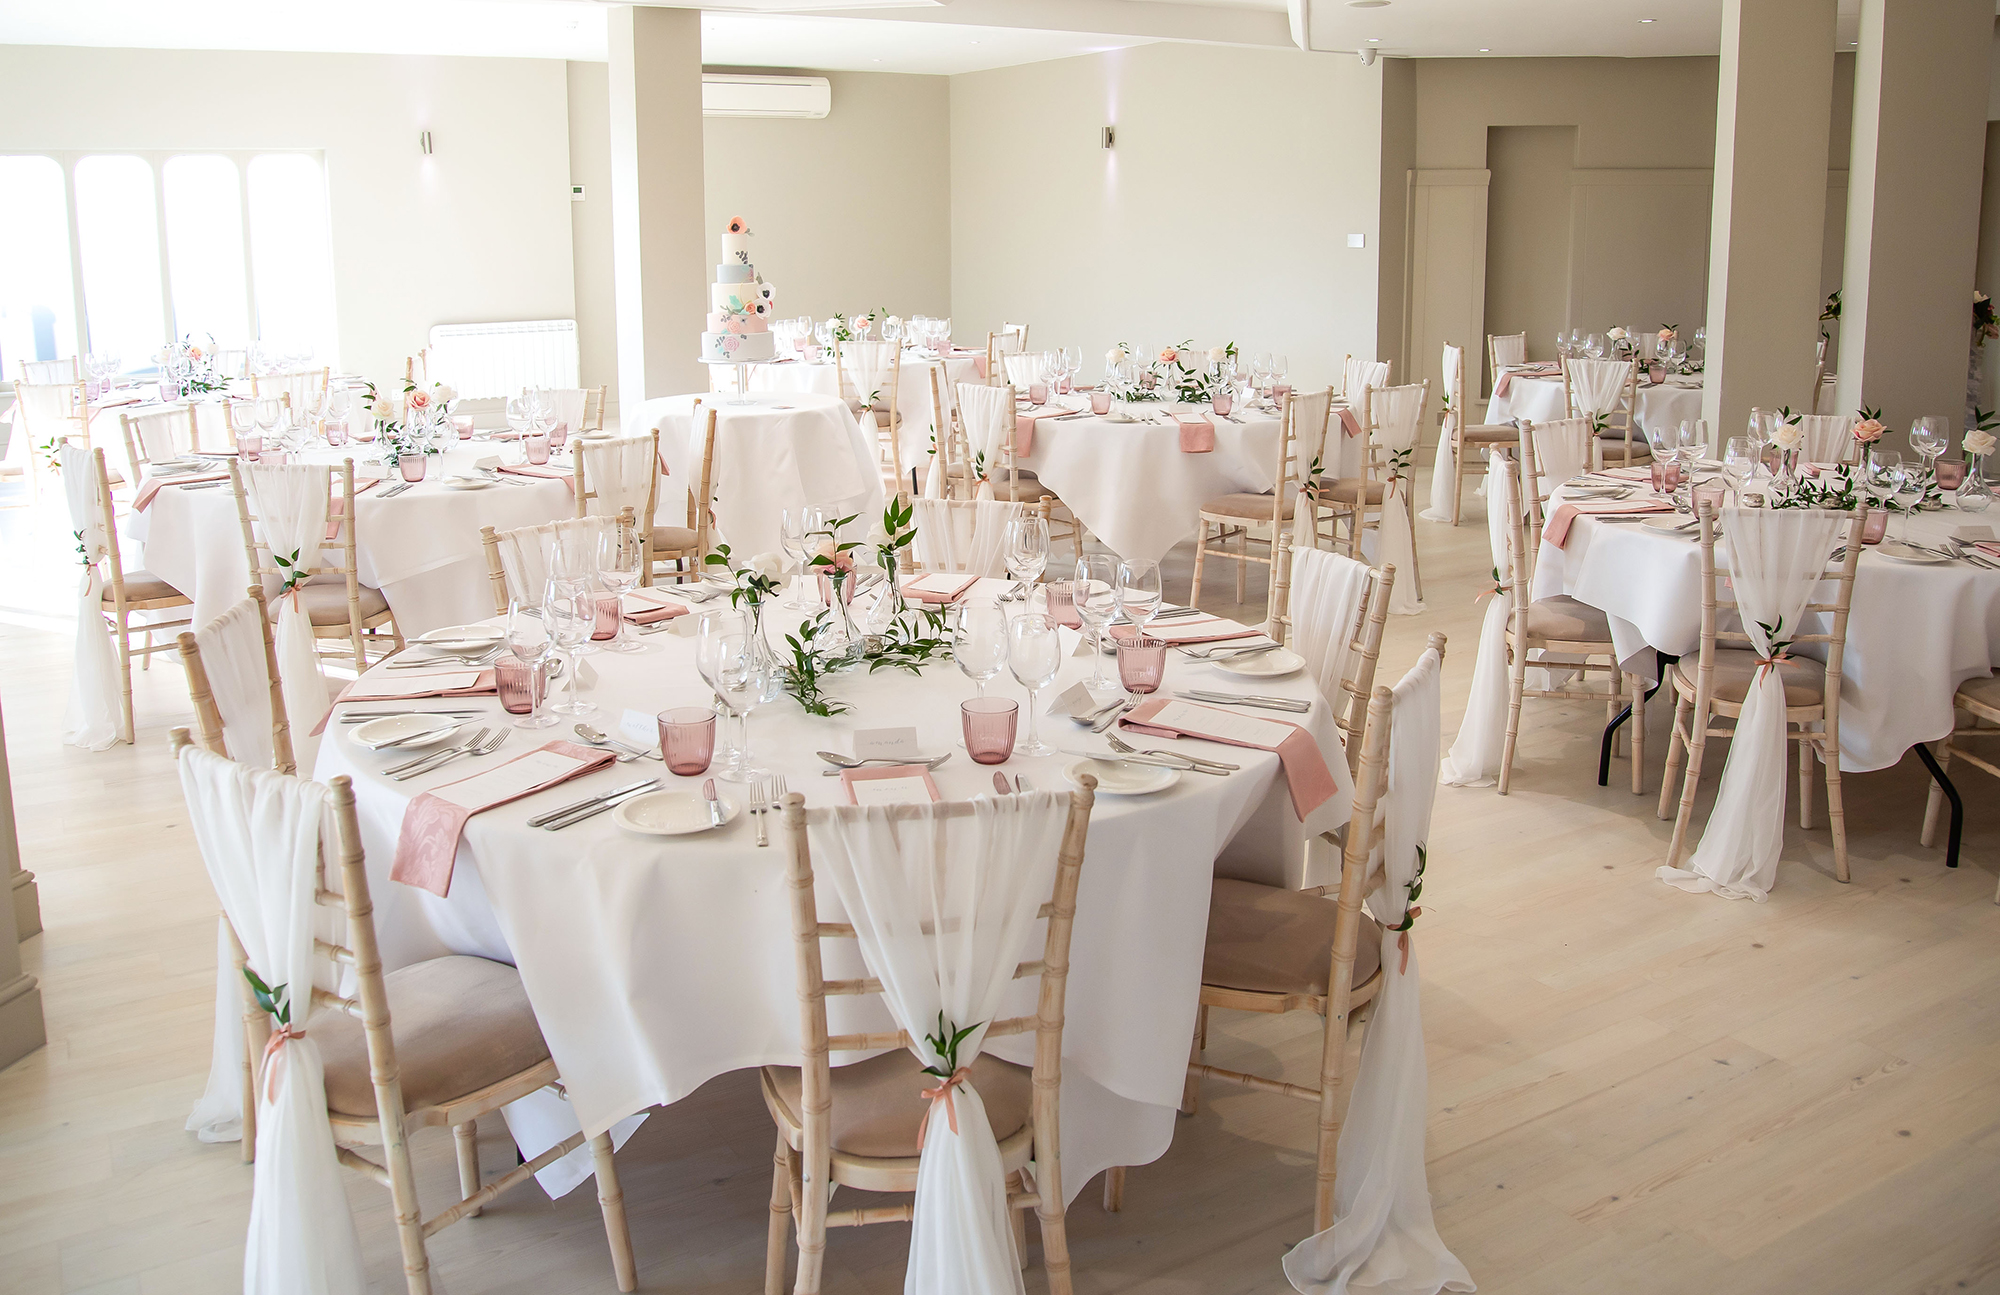 Stunning laid tables with a pink and white theme ready for the wedding breakfast, in the main function room at All Saints Hotel